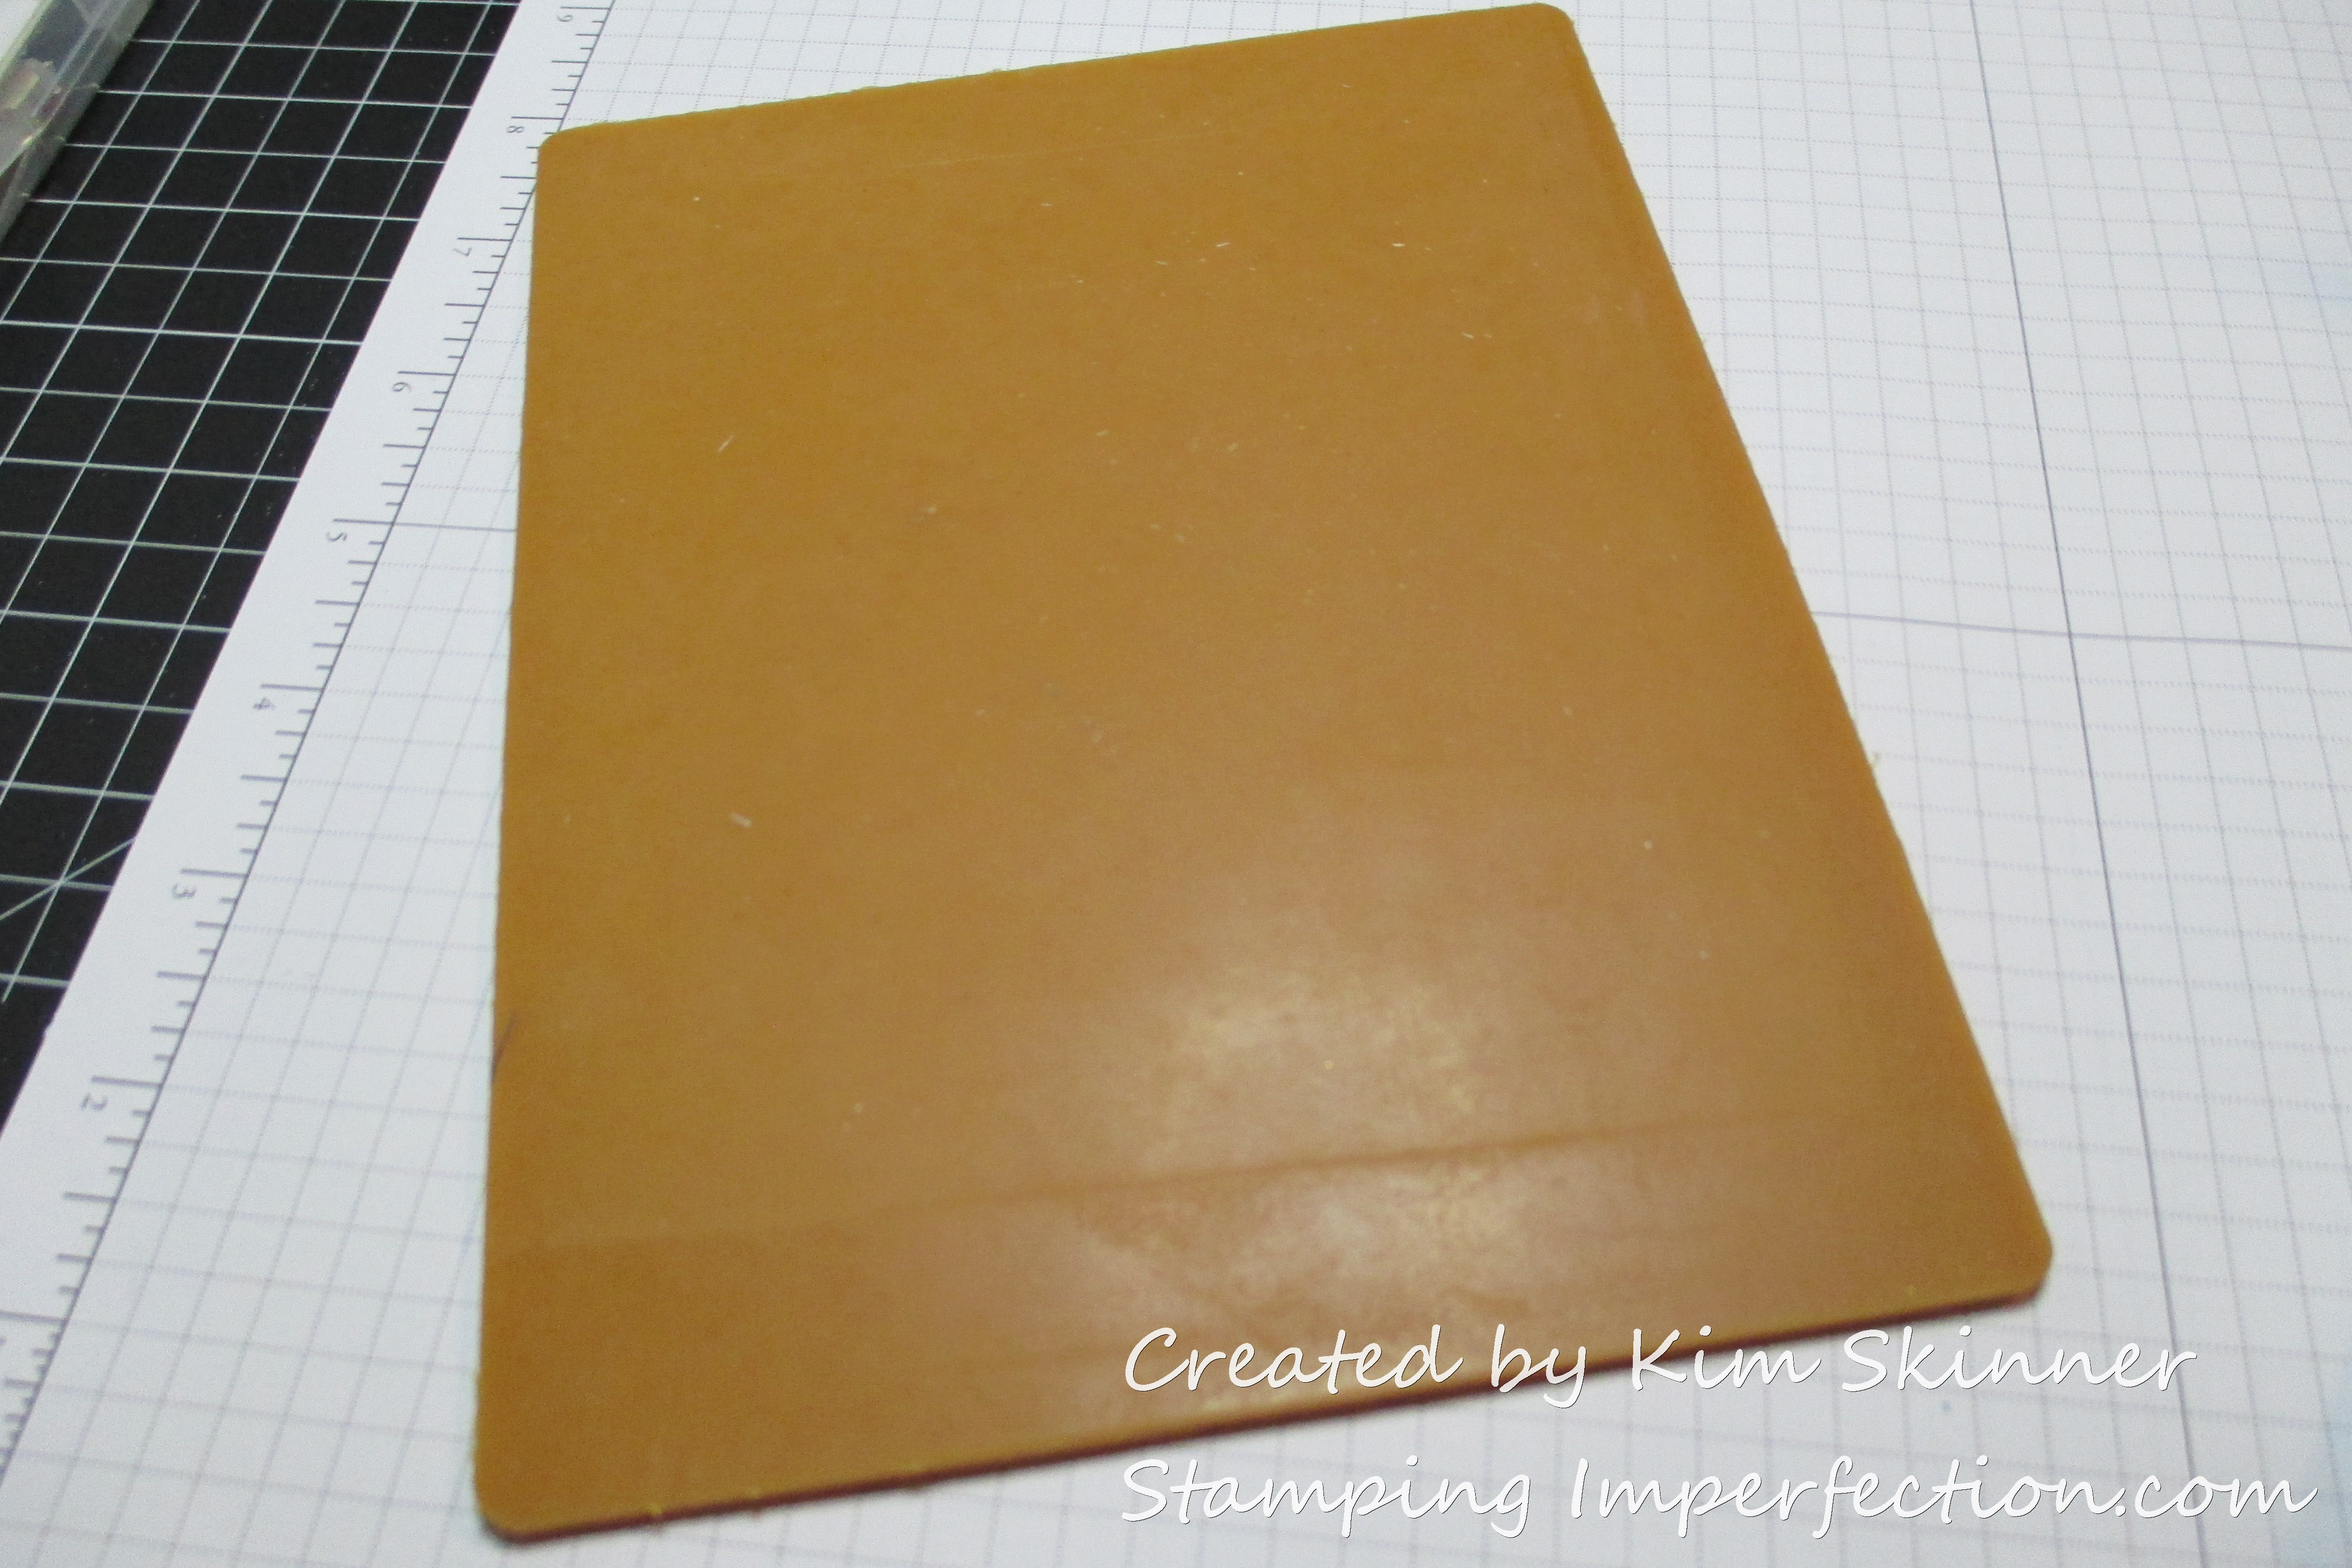 Stamping Imperfection Embossing Quick Tip